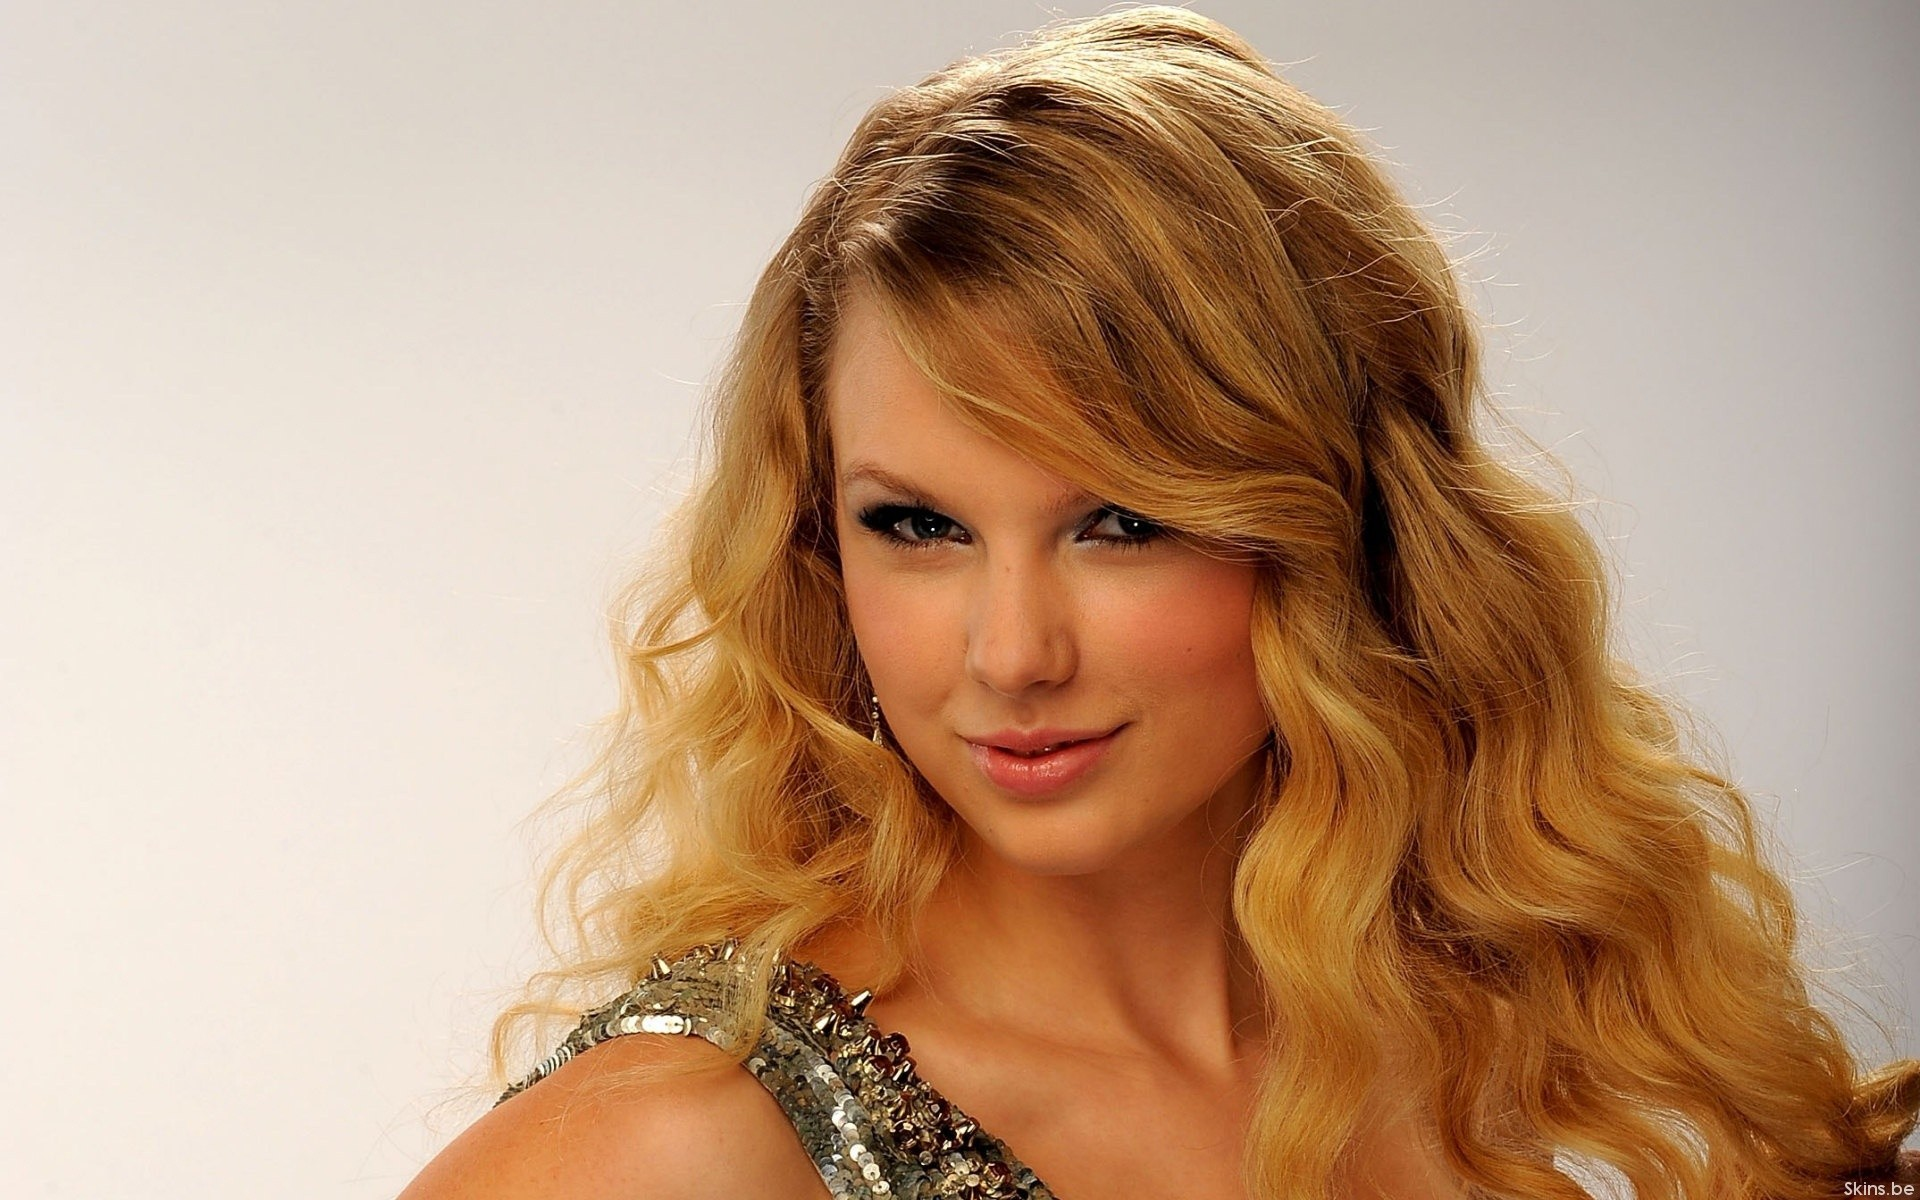 50 Gorgeous Taylor Swift Wallpapers 1920x1200